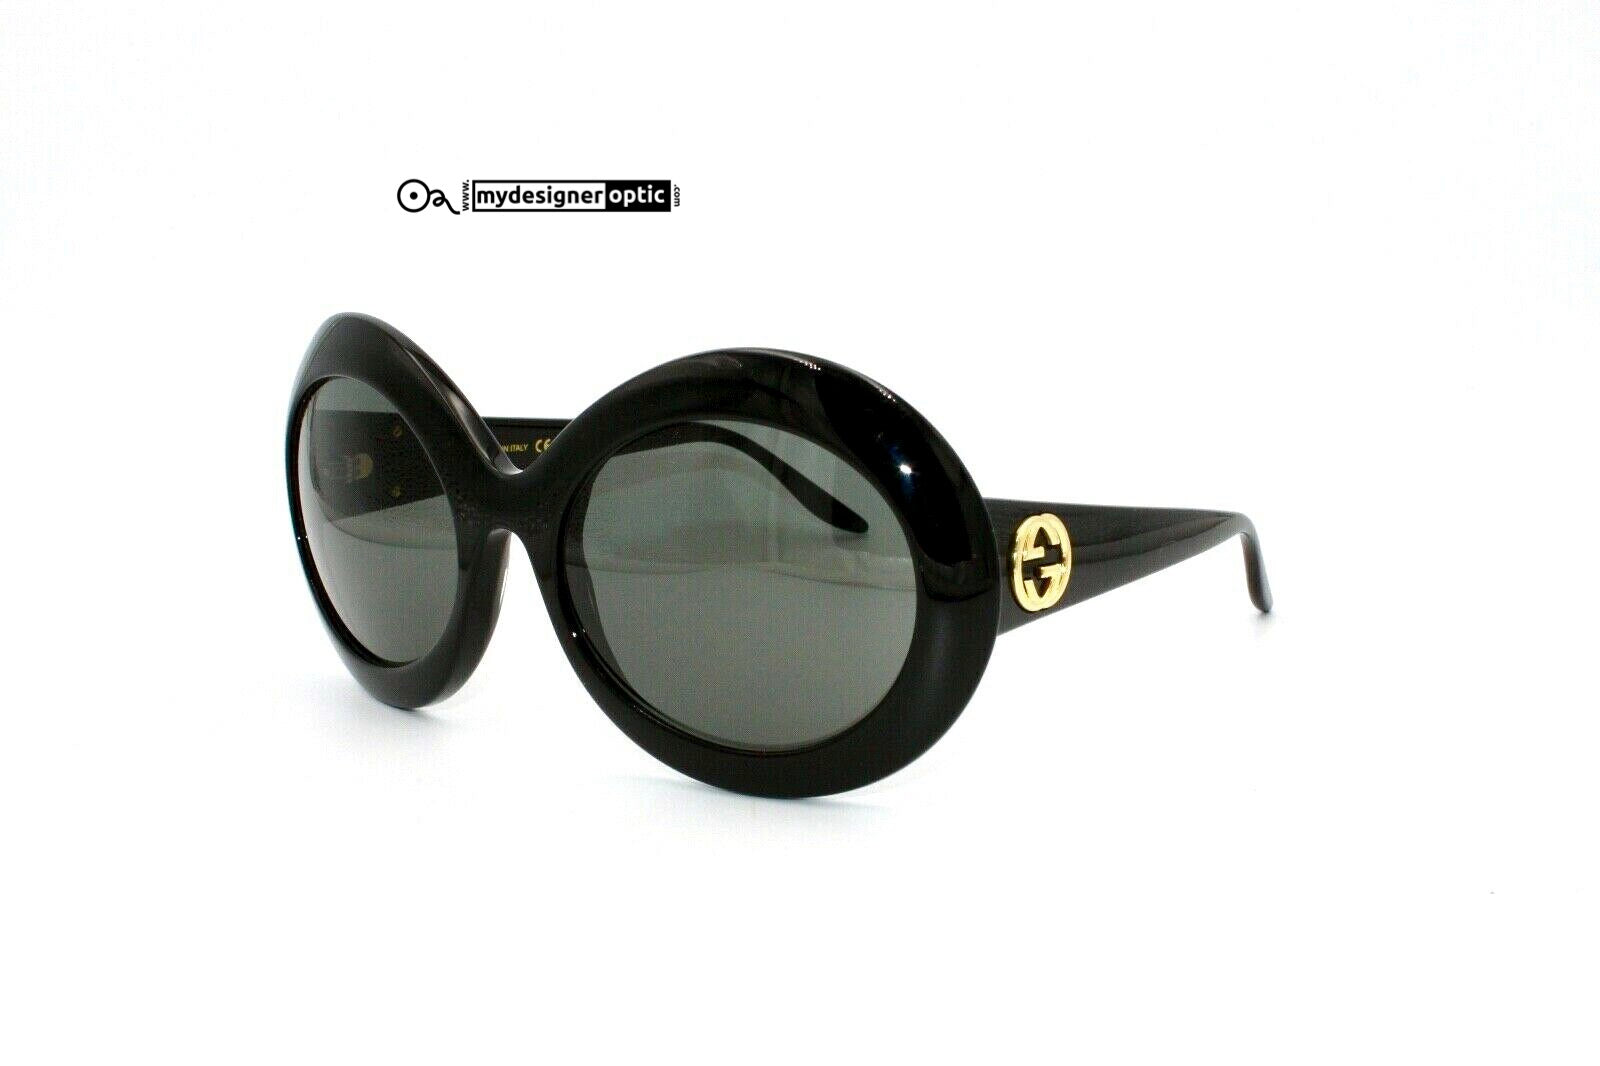 Gucci Sunglasses Oversized GG0774S 001 64-23-140 Made in Italy (DEAD STOCK) - Mydesigneroptic